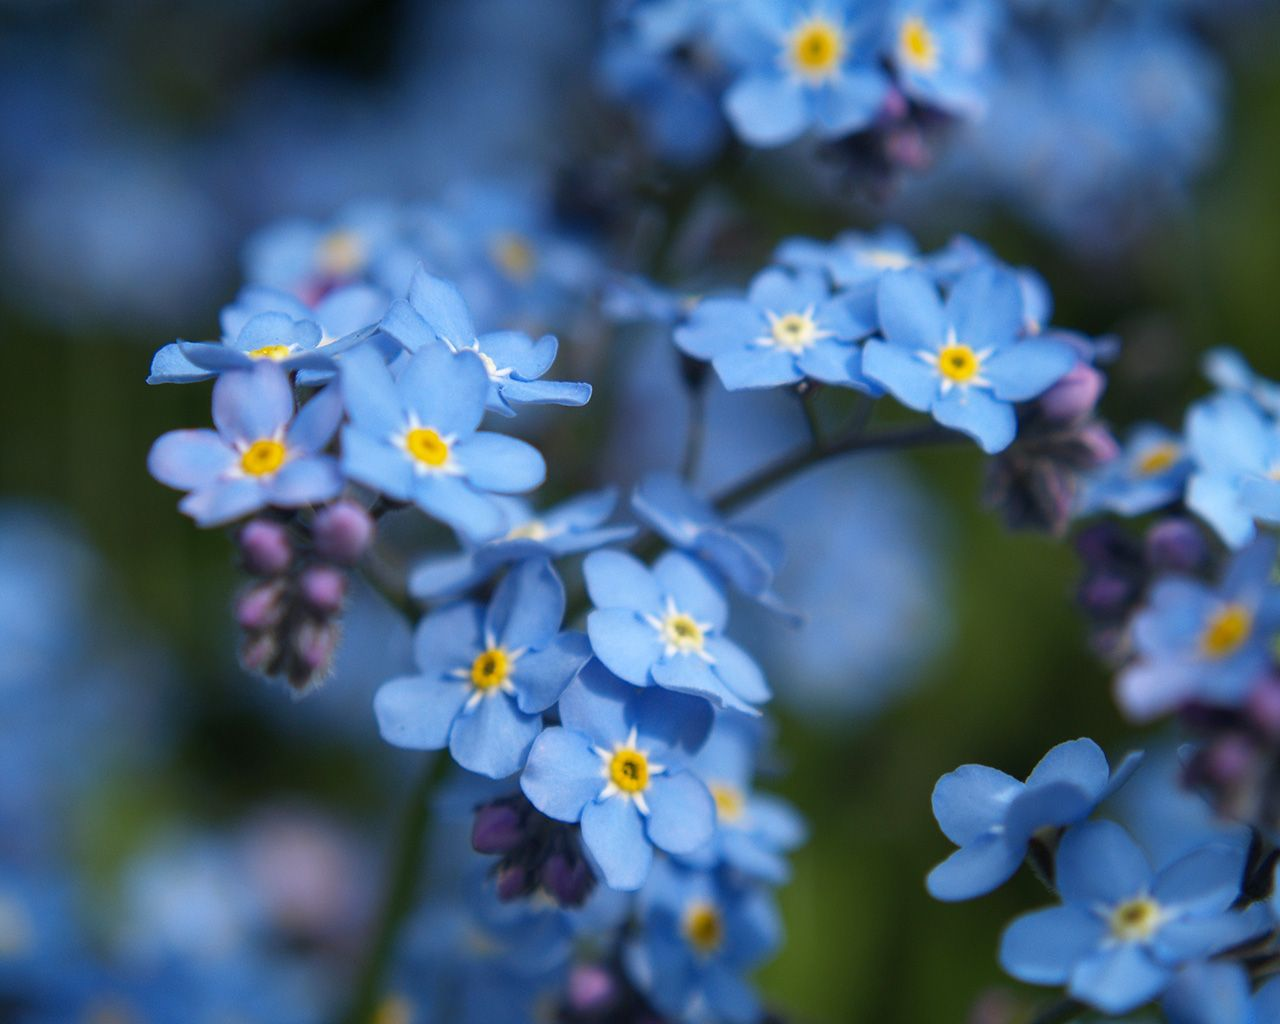 Forget me not flowers google search my favorite flowers plants forget me not flowers google search mightylinksfo